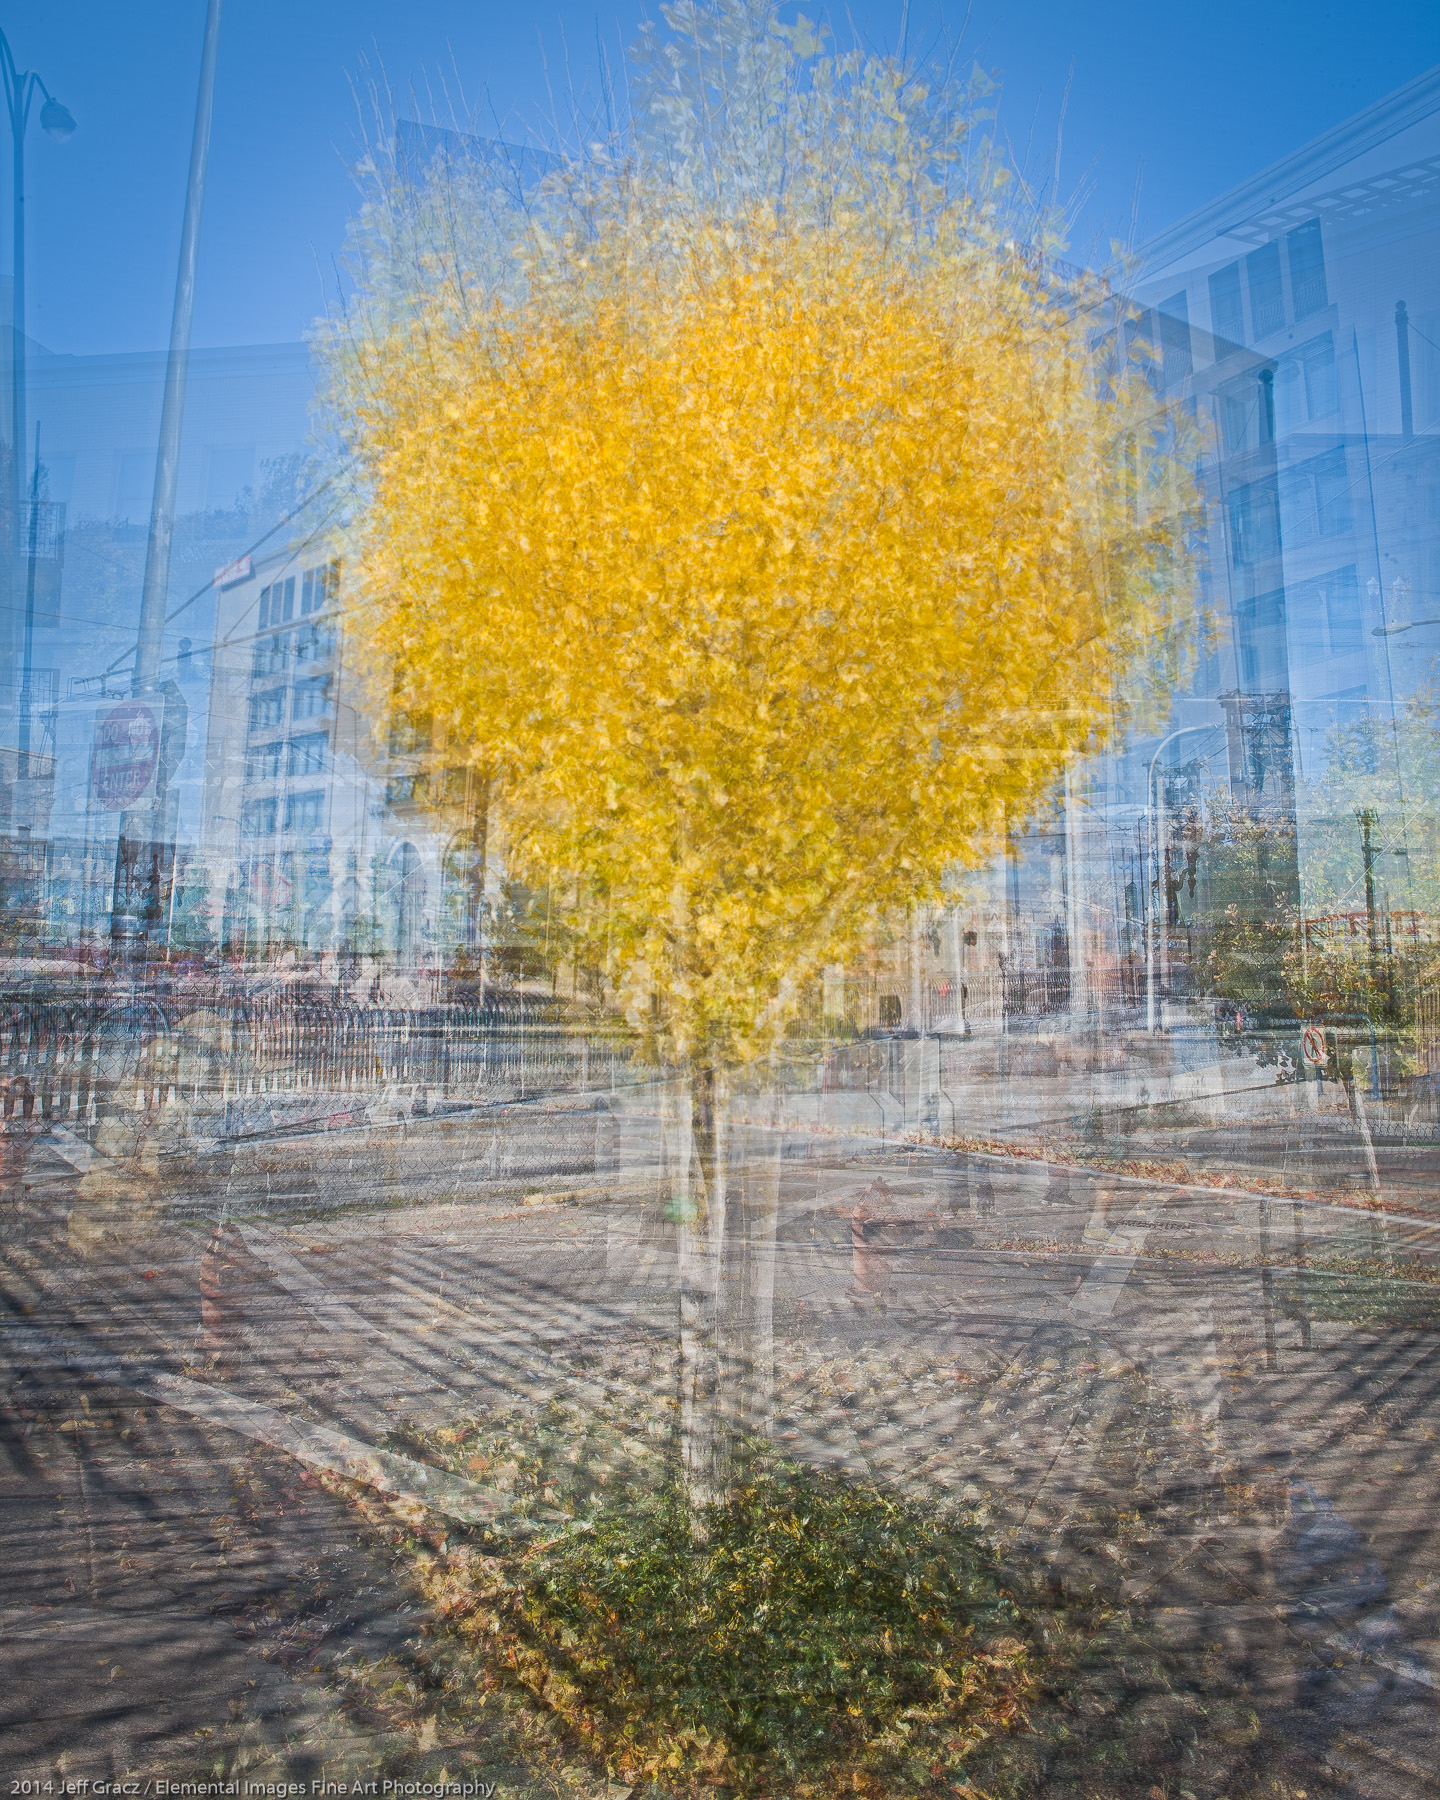 Arborhoods Series: Street Gingko   Portland   OR   USA - © 2014 Jeff Gracz / Elemental Images Fine Art Photography - All Rights Reserved Worldwide